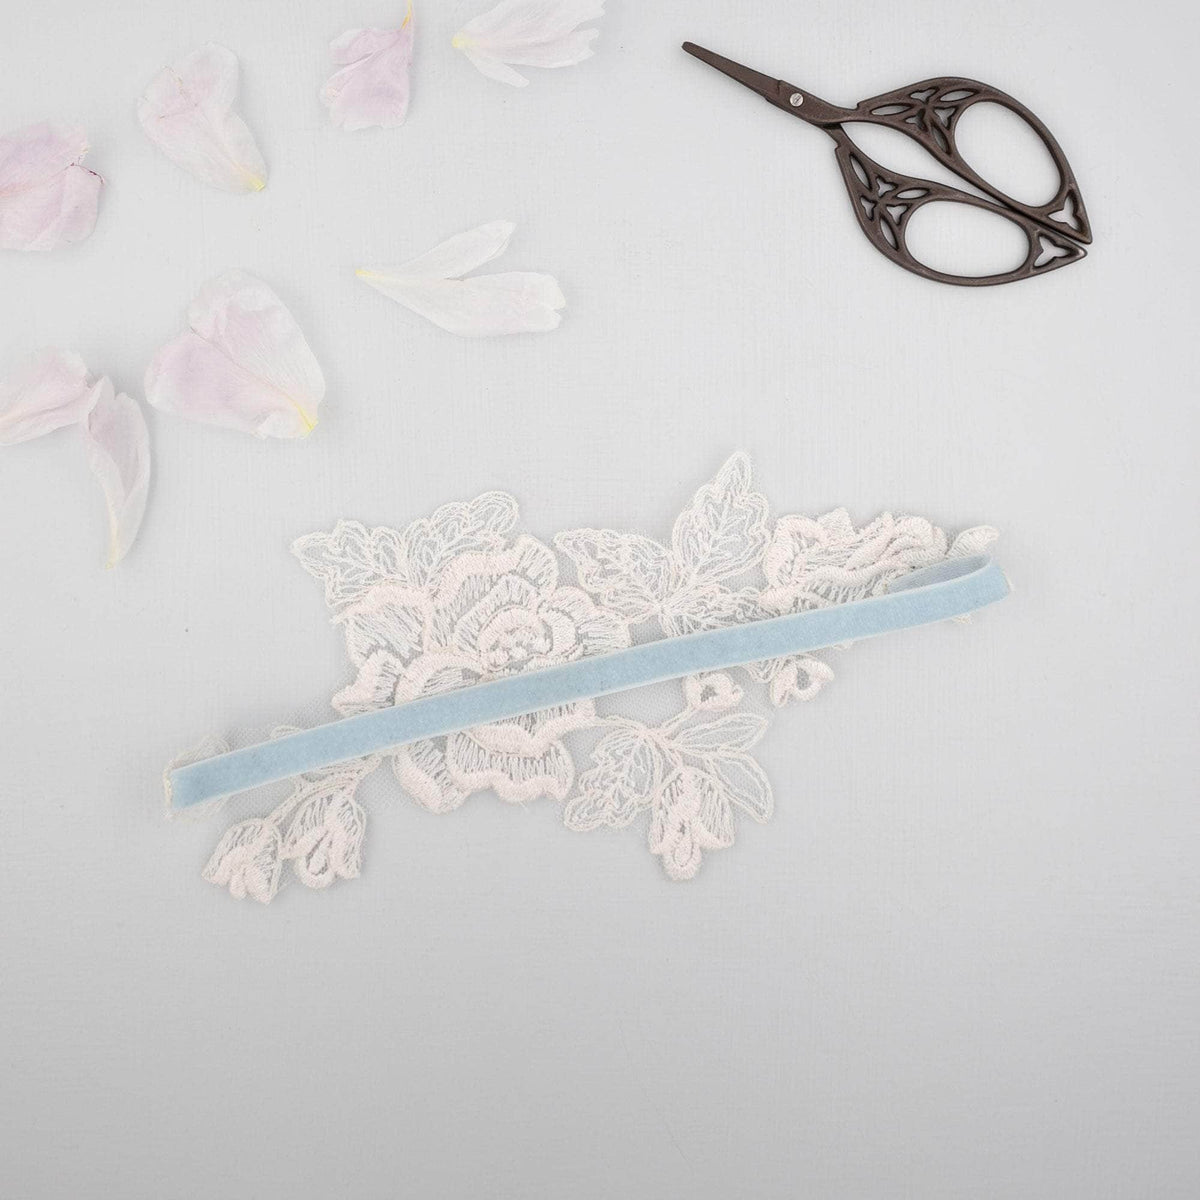 Wedding Garter 'Something blue' and ivory lace motif garter - 'Amara'